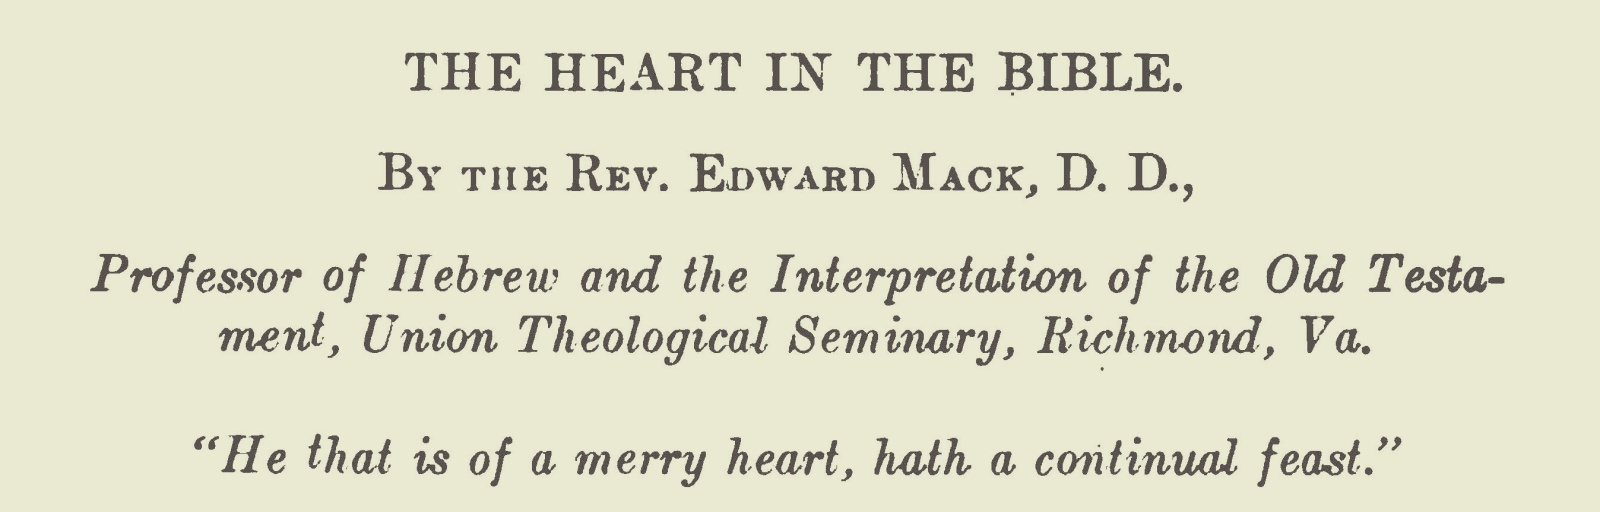 Mack, Sr., Edward, The Heart in the Bible Title Page.jpg